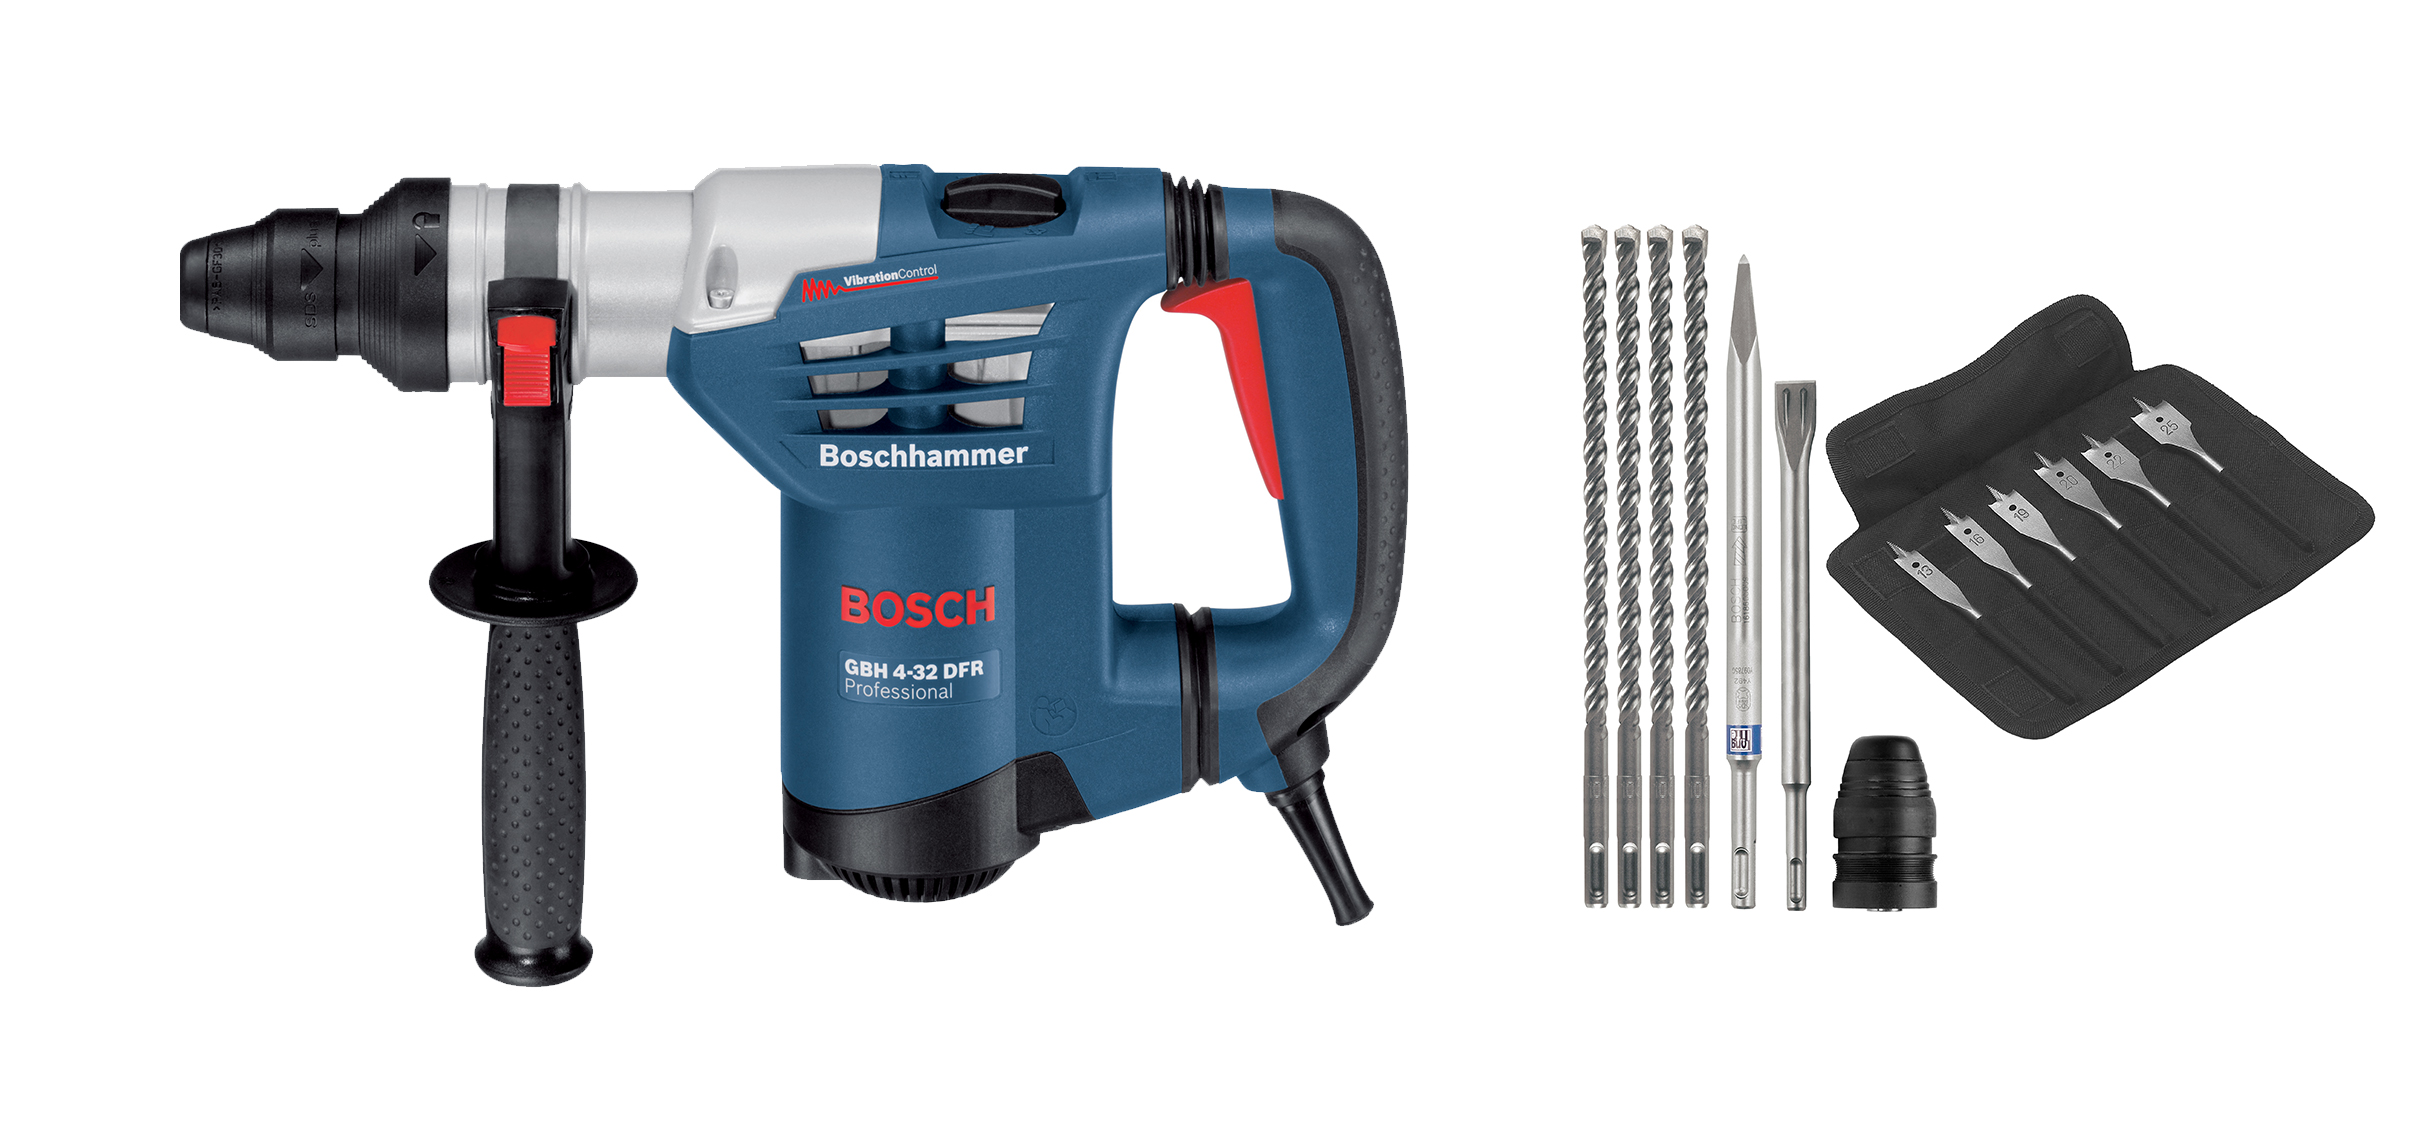 bosch gbh 4 32dfr 900w 3 mode rotary hammer power tool shop. Black Bedroom Furniture Sets. Home Design Ideas